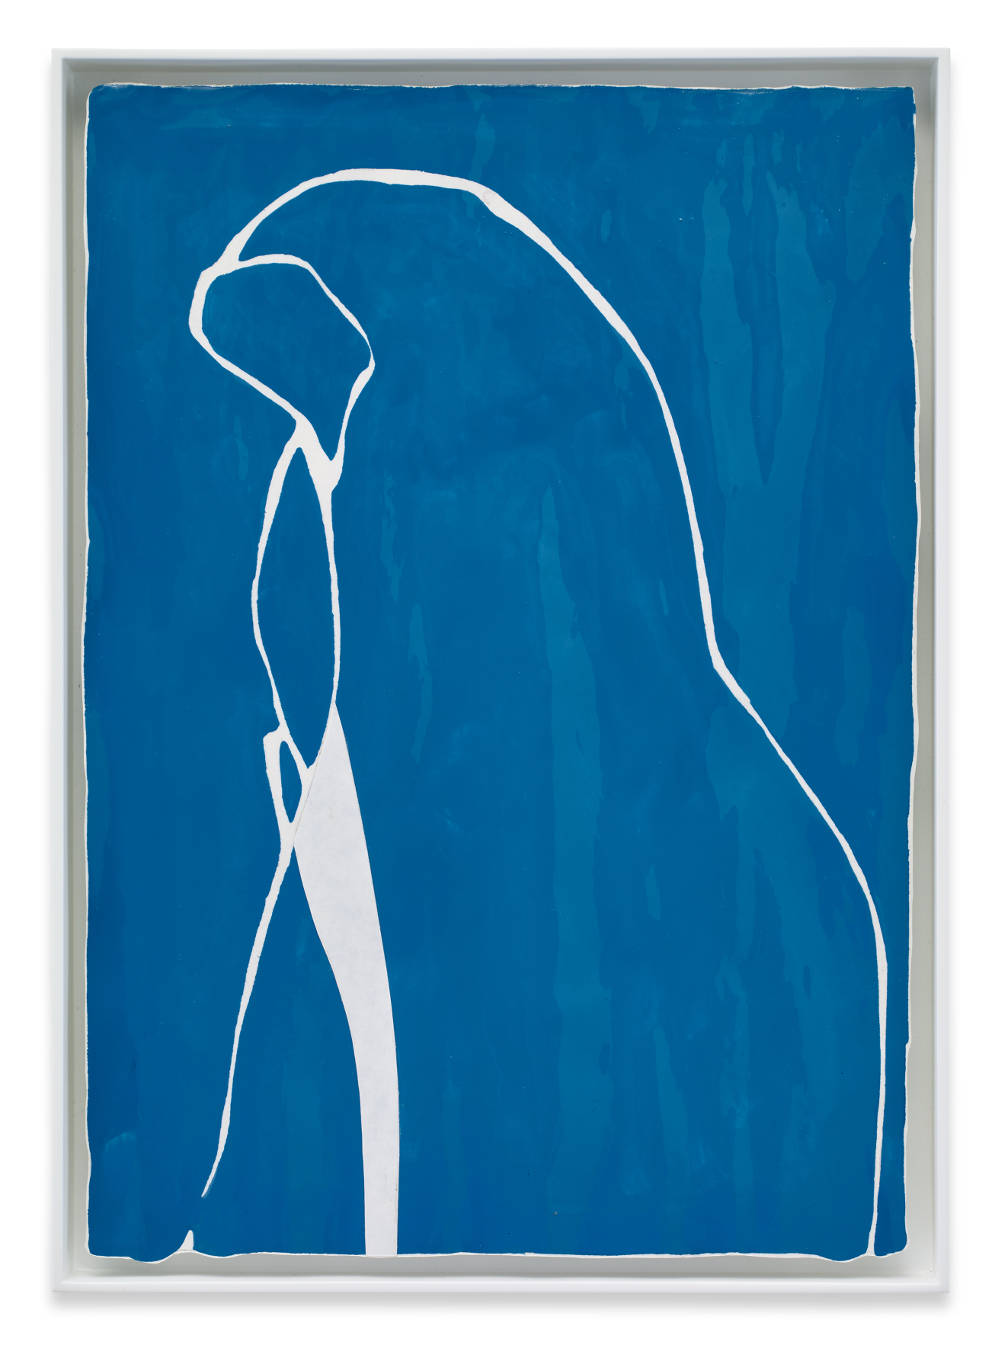 Gary Hume, Blue Nun, 2015. Gloss paint on paper 30,3 x 21,2 cm / 12 x 8 3/8 inches / 32,5 x 23,8 cm (framed) / 12 7/8 x 9 3/8 inches (framed) © Gary Hume / DACS, London, 2017. Courtesy of the artist, Sprüth Magers and Matthew Marks Gallery